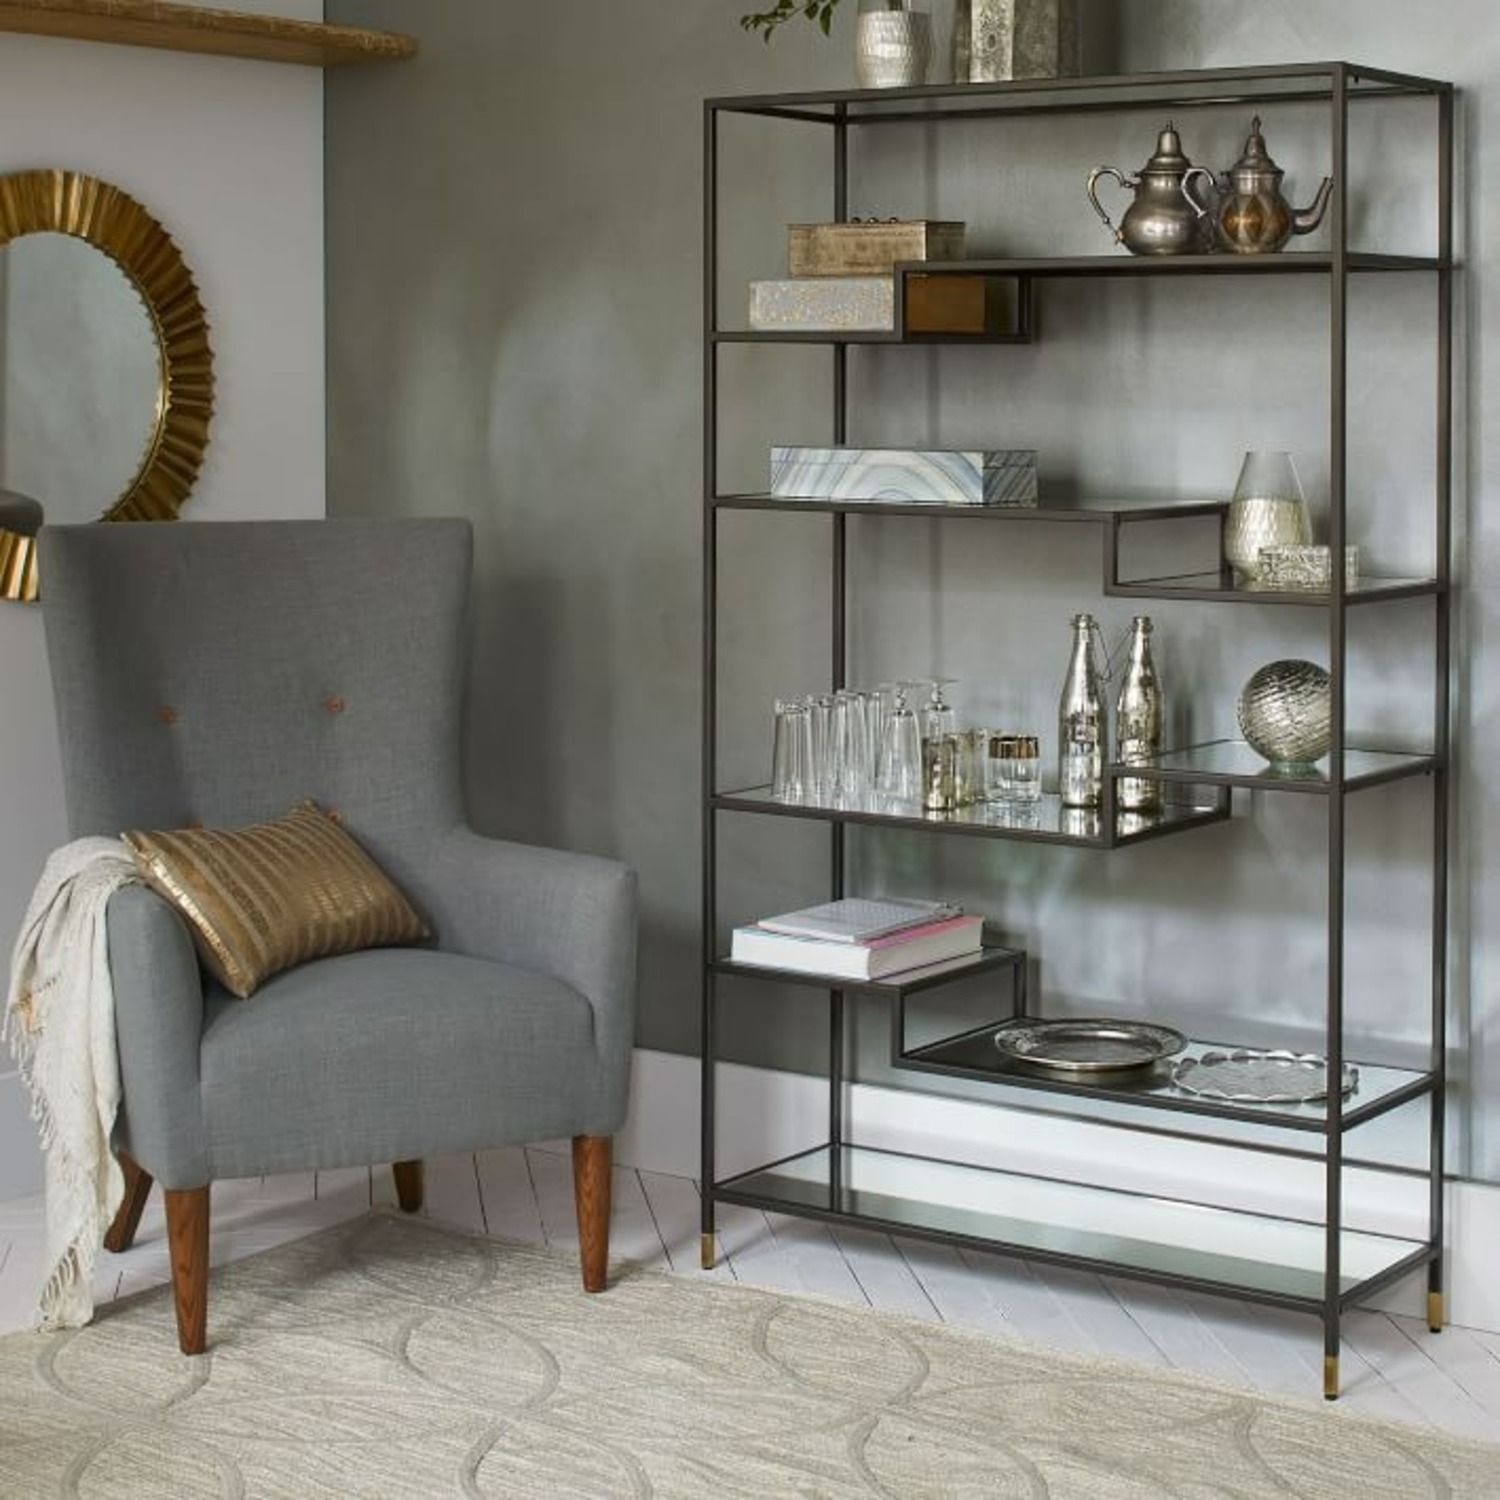 West Elm Tiered Tower Bookcase - image-1